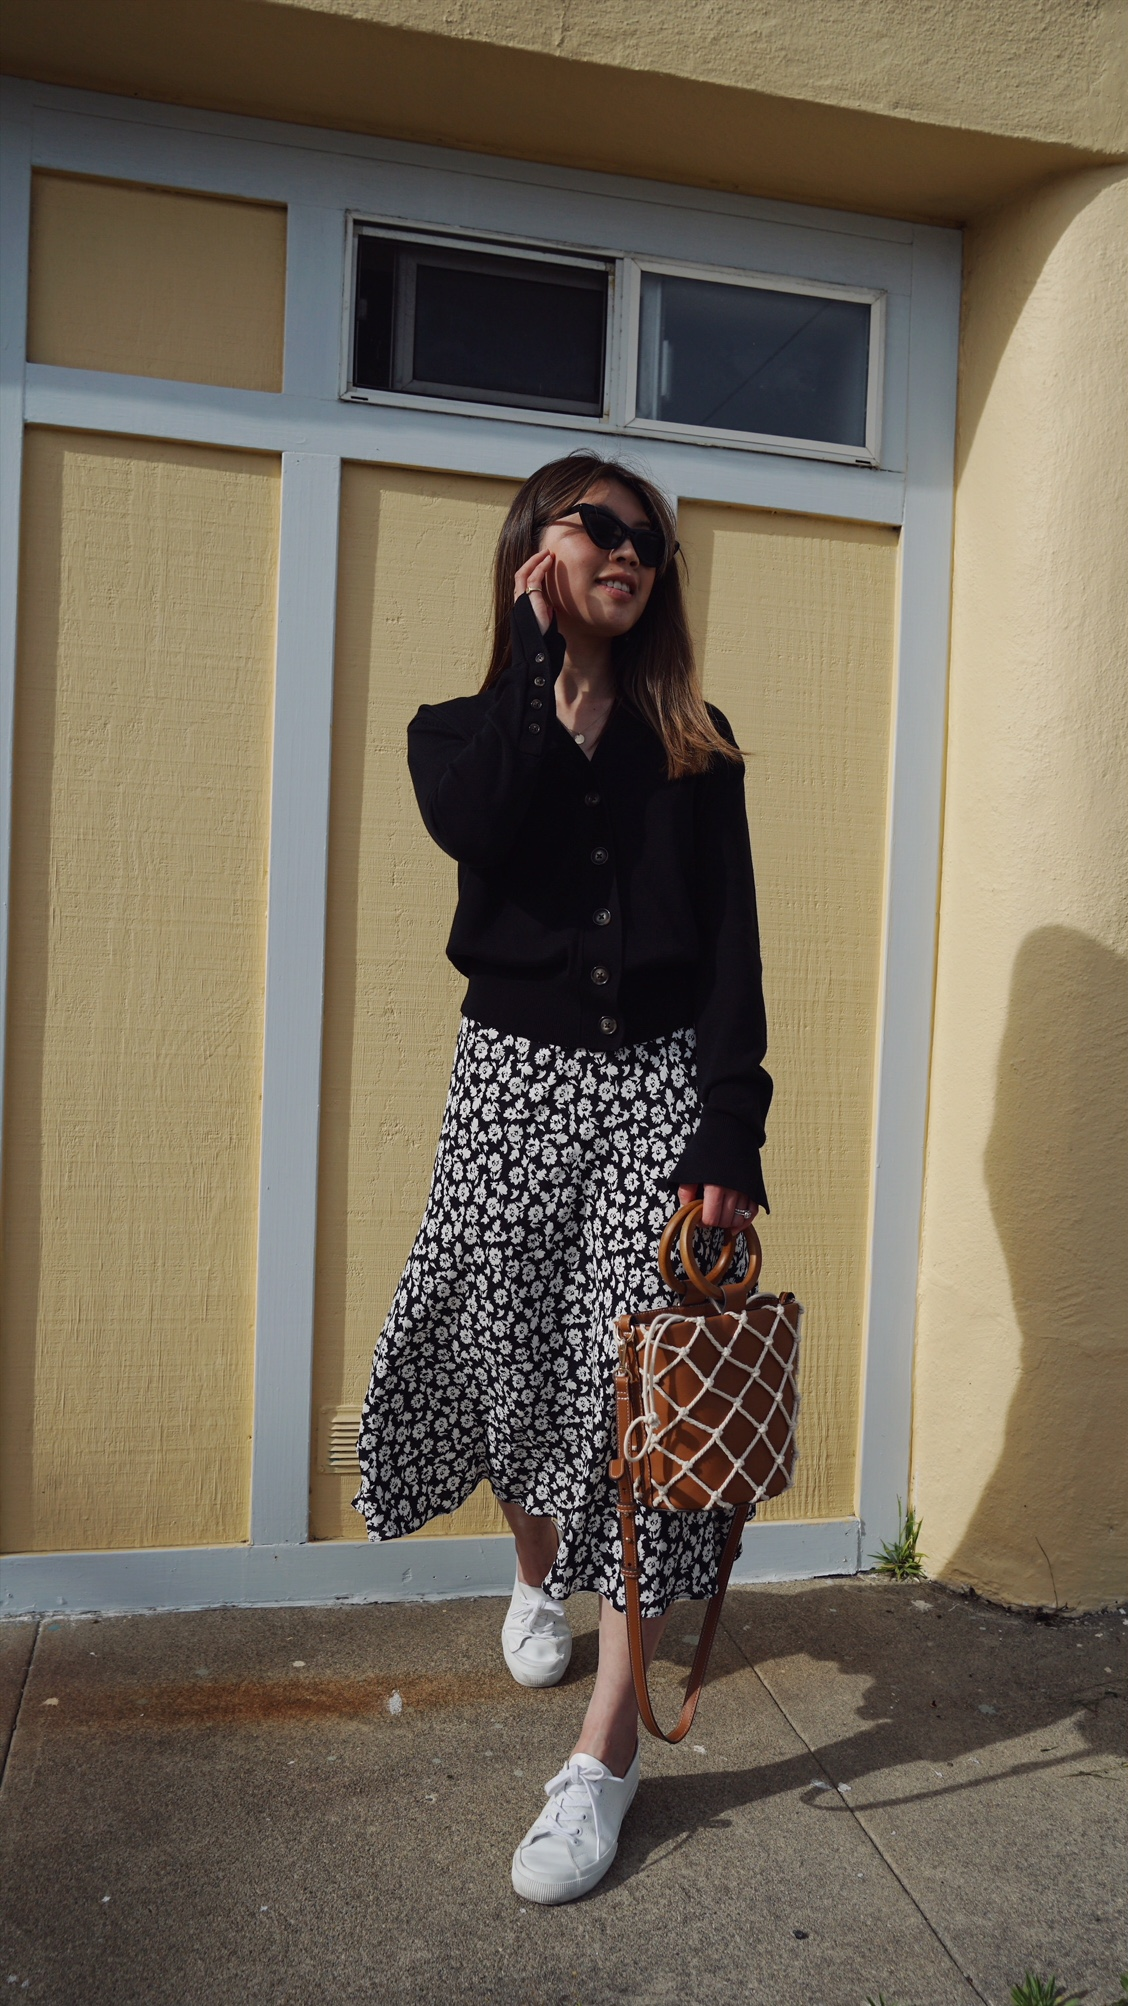 chic-spring-outfit-ideas.JPG